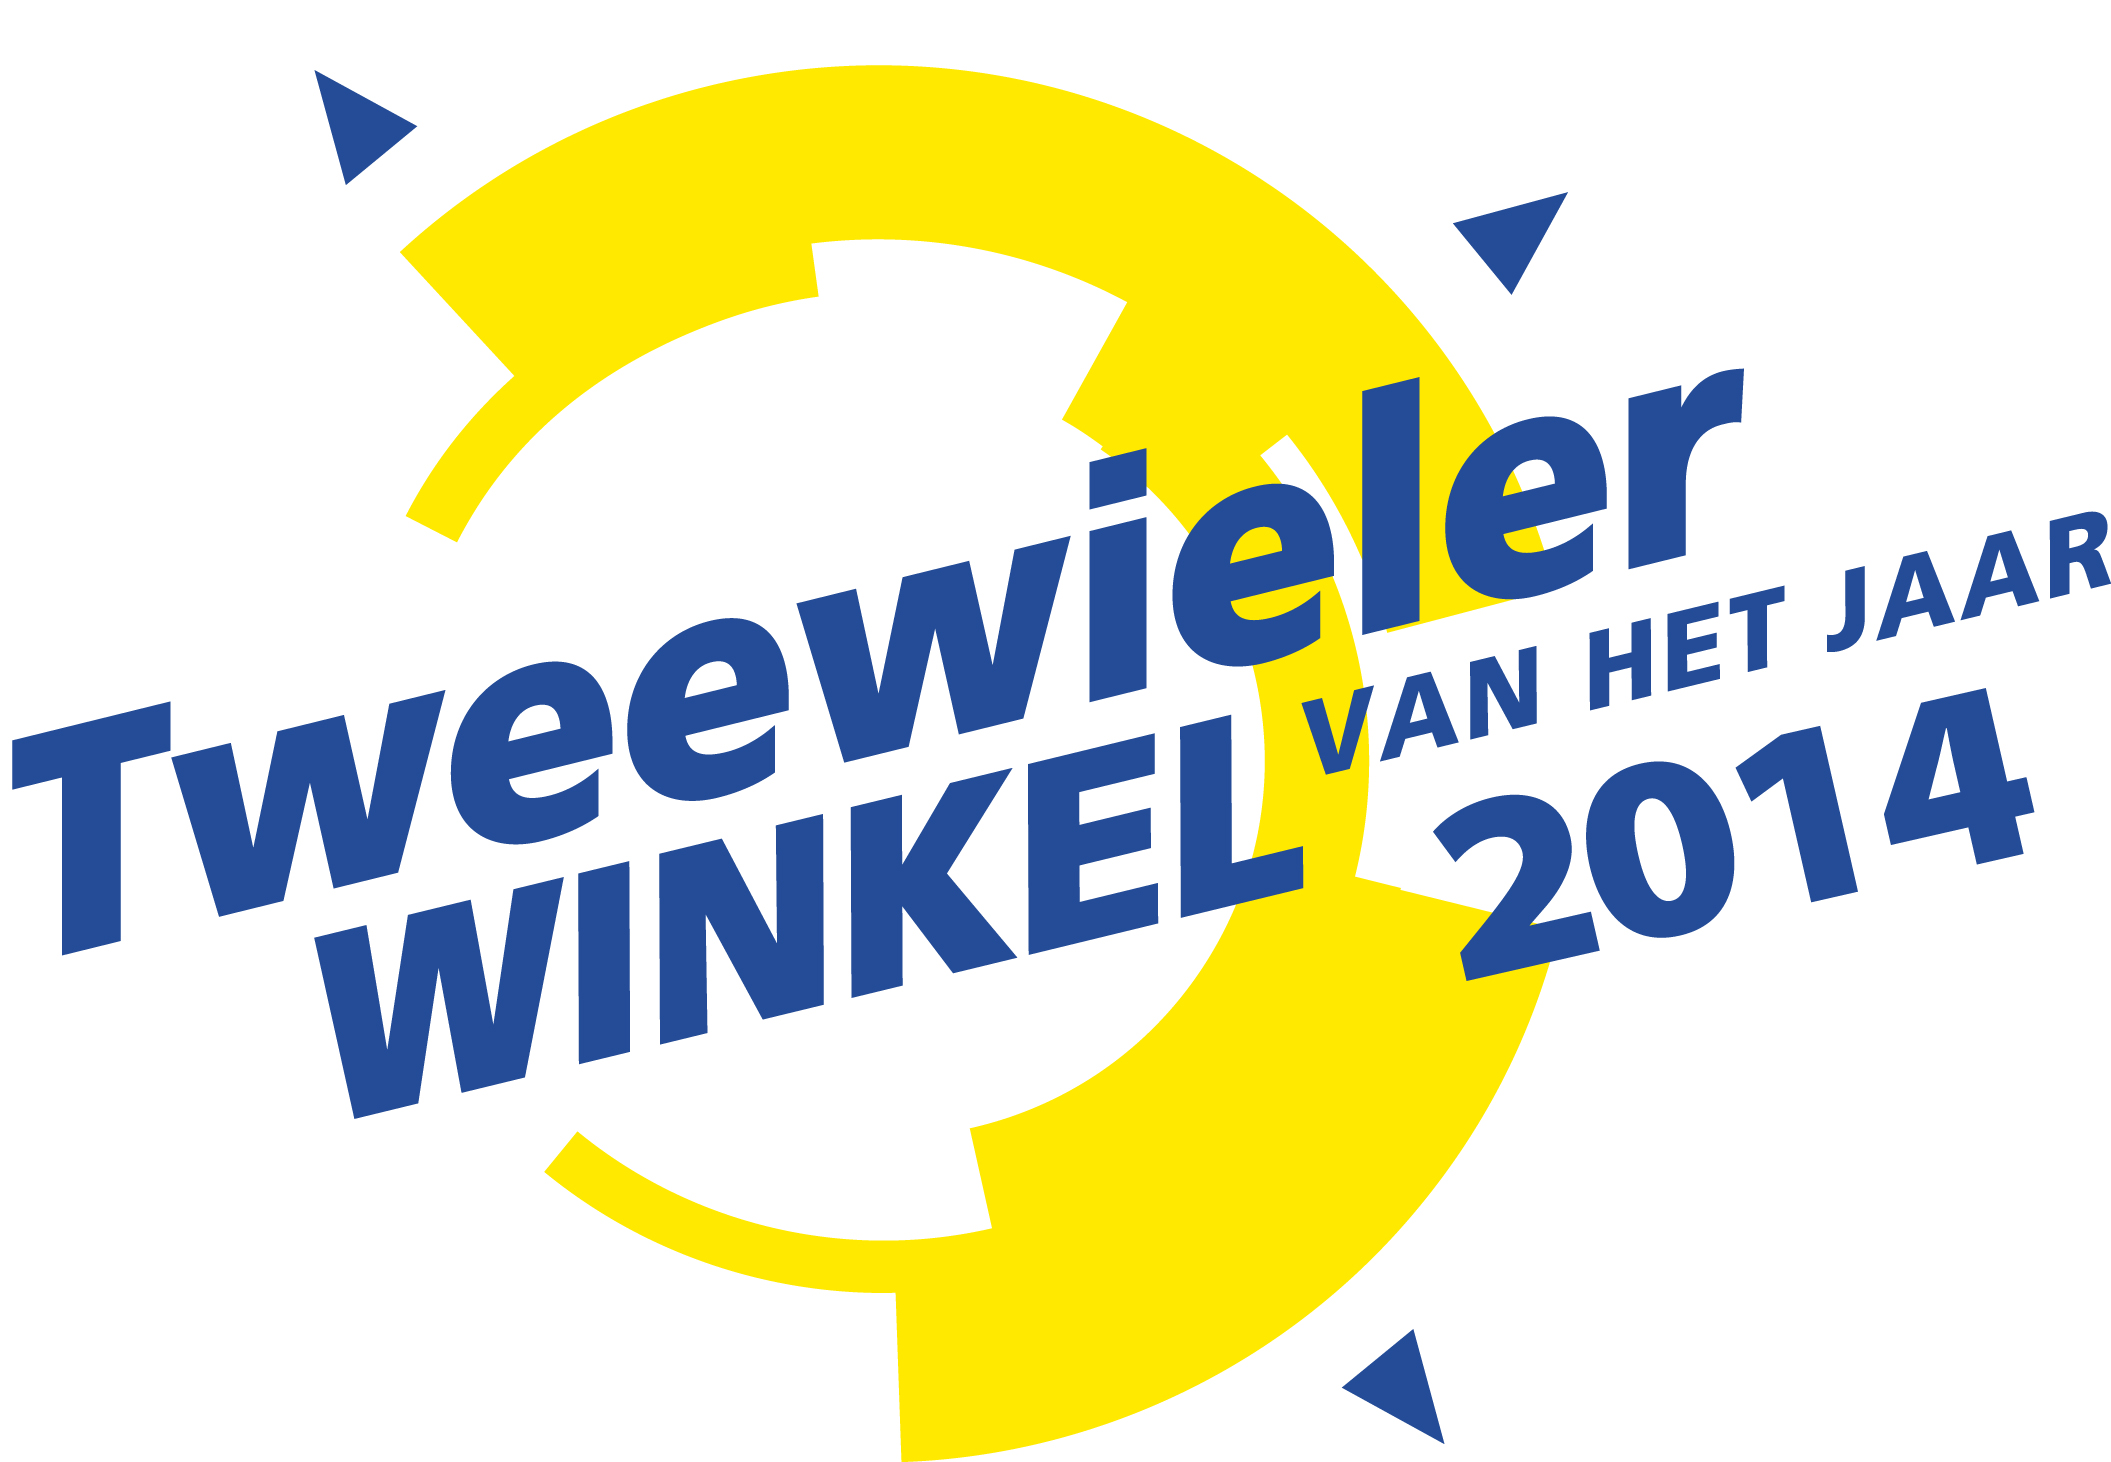 Tweewielerwinkel - 2014